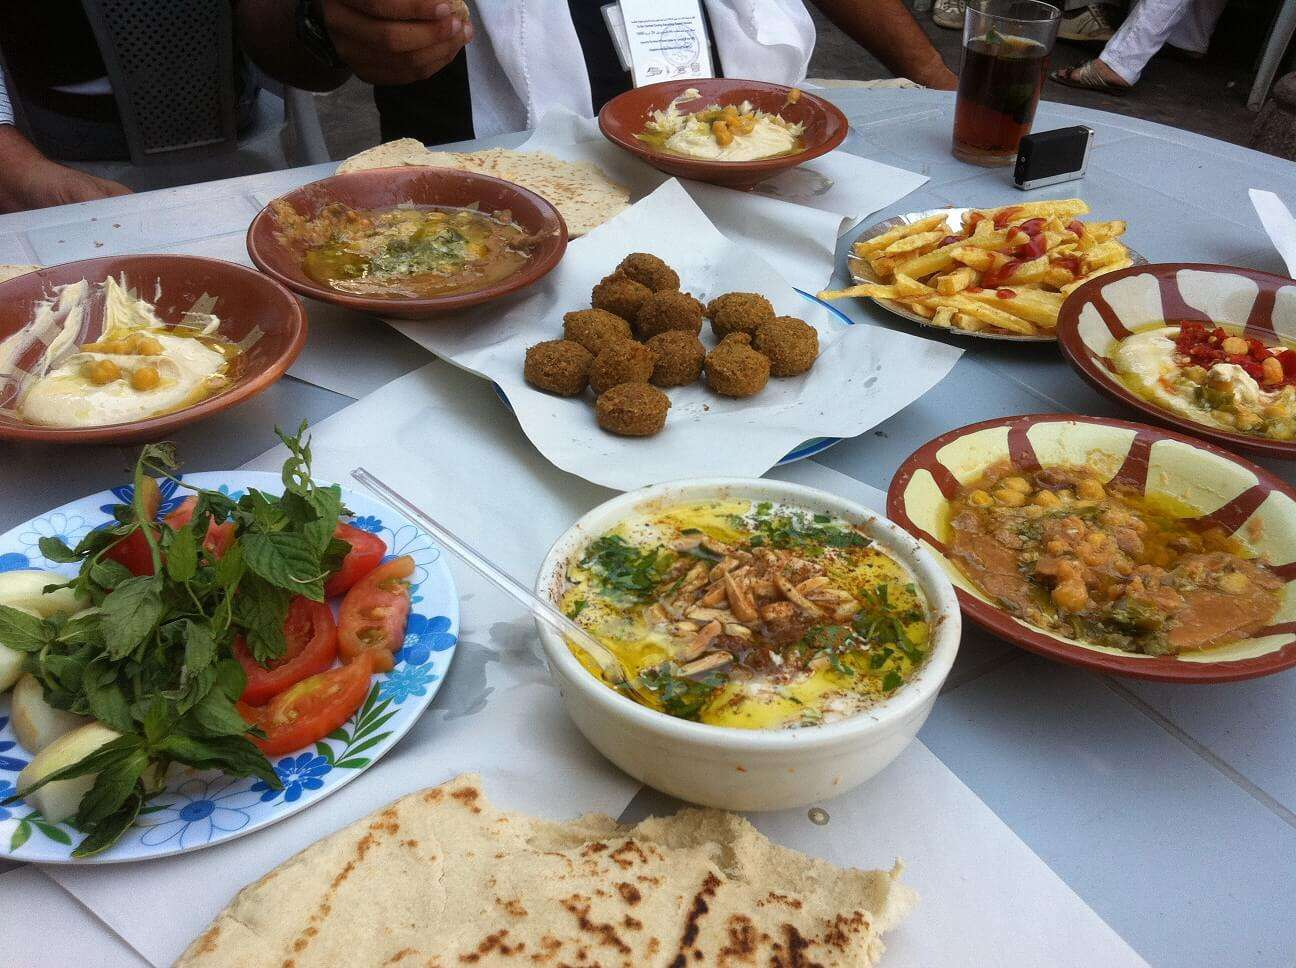 Jordanian authentic food on table